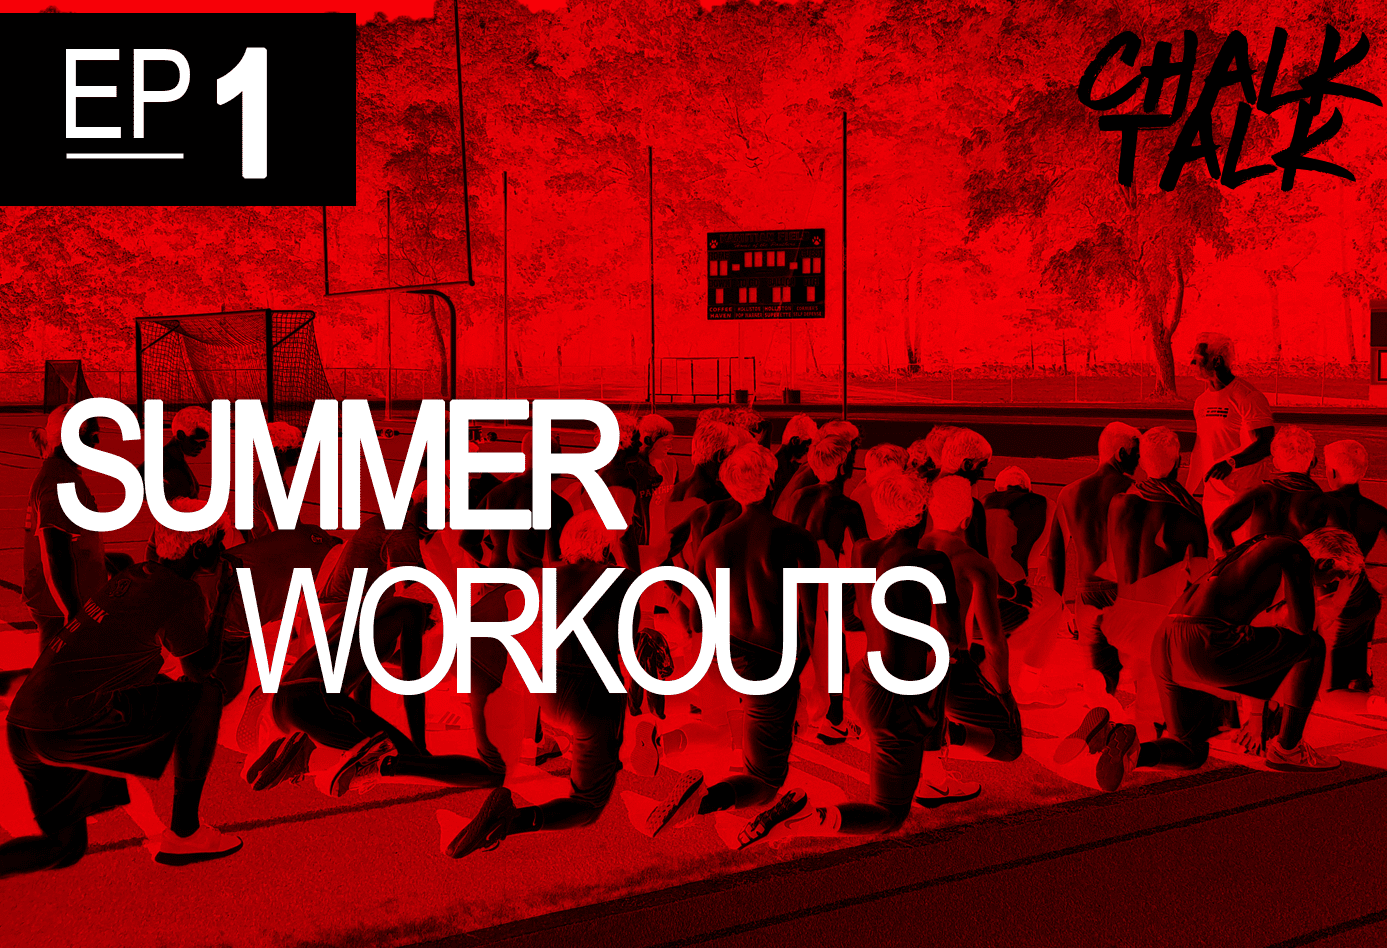 Episode 1 - Summer Workouts